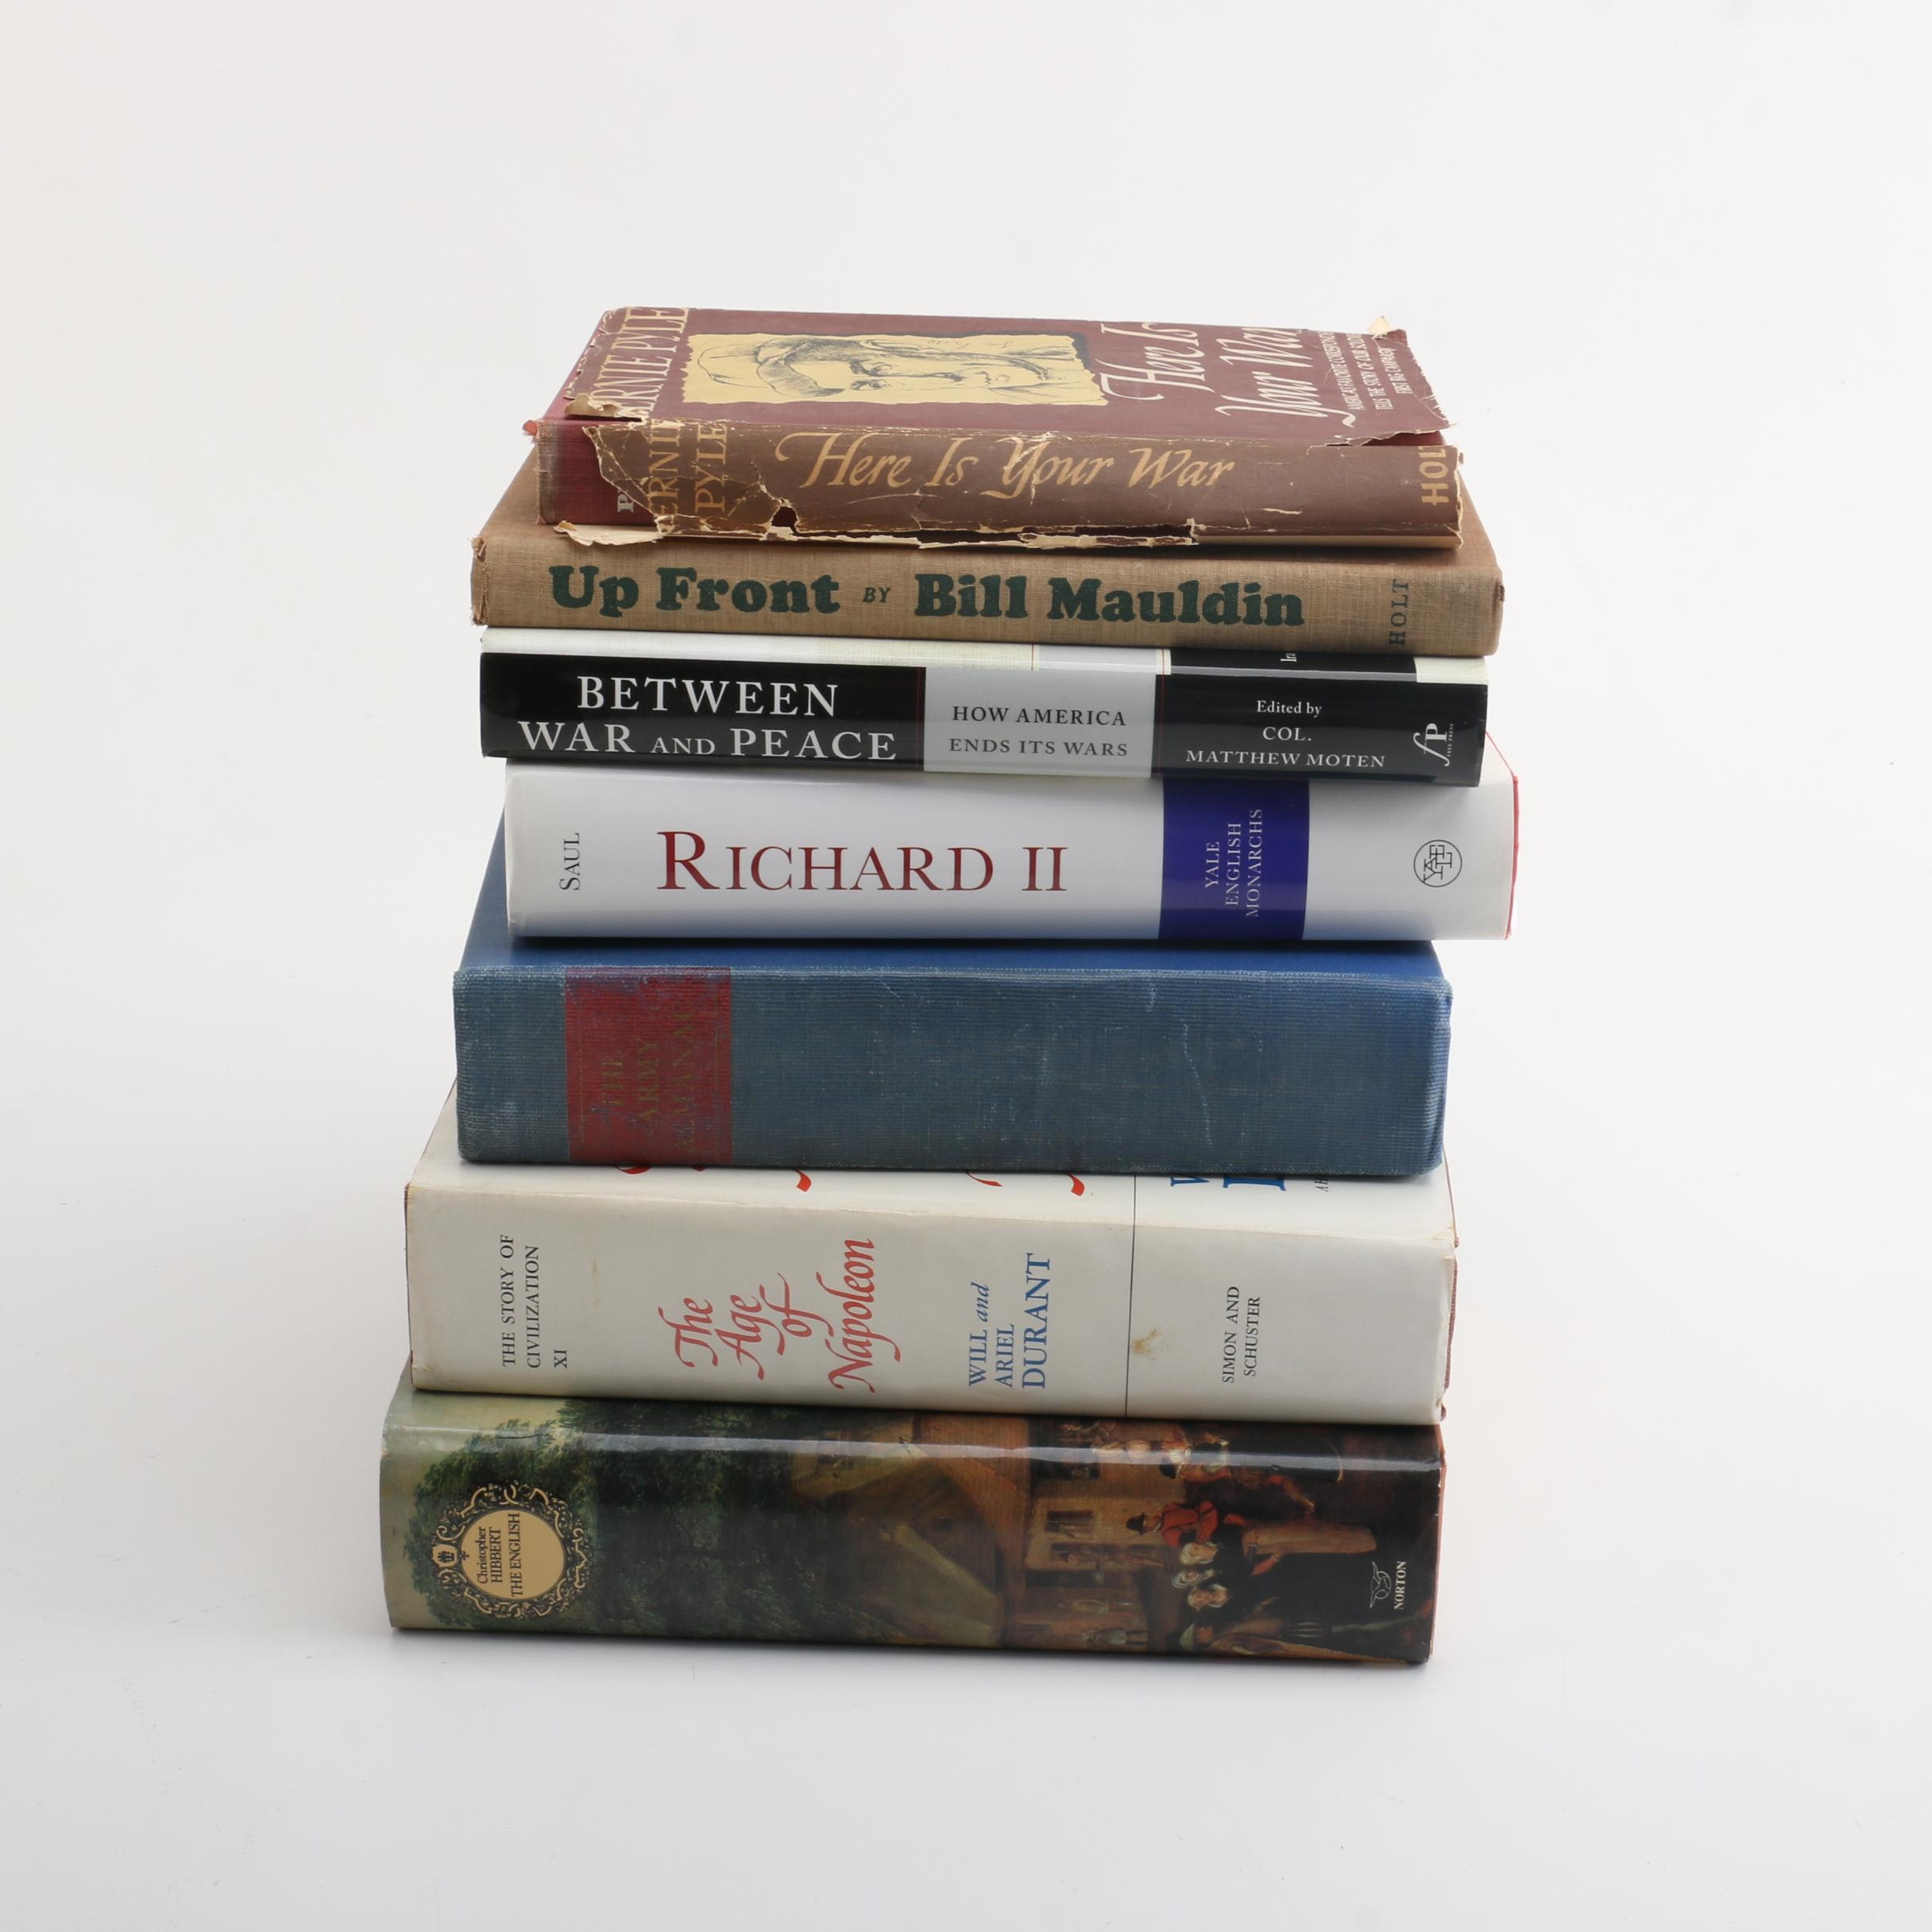 Books on History and War